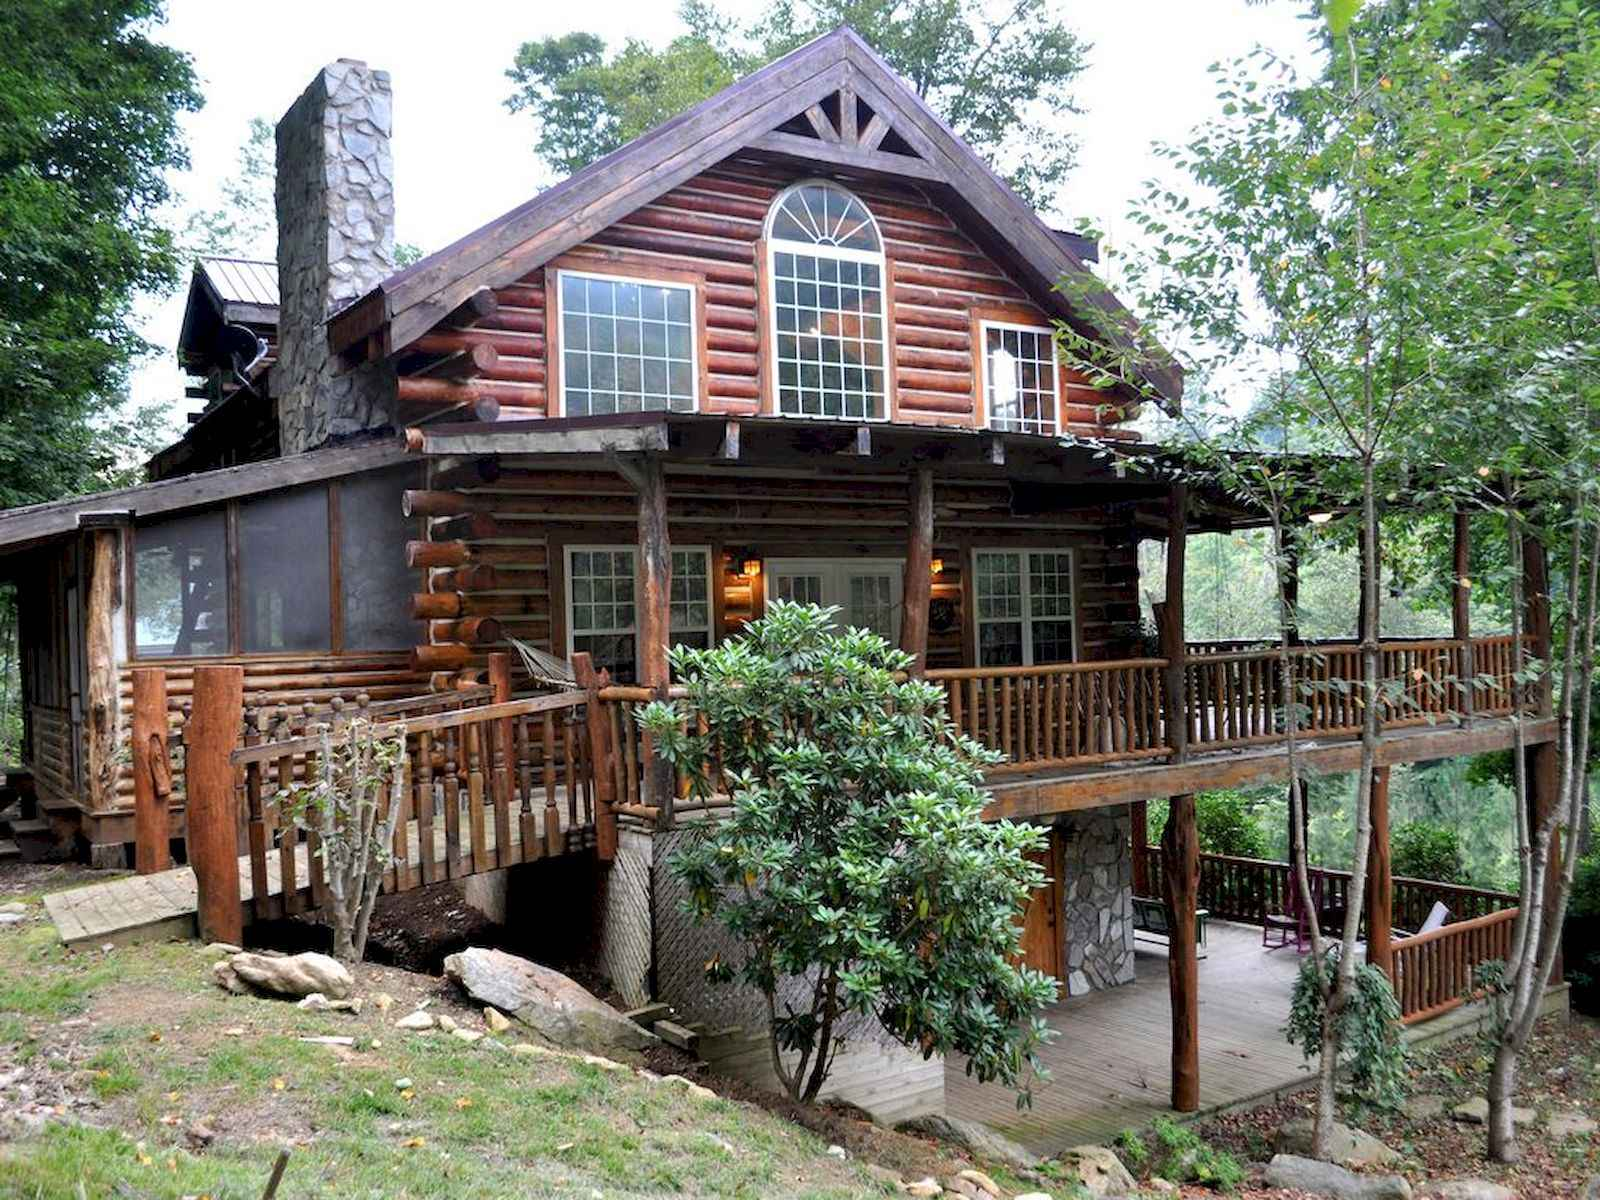 60 Rustic Log Cabin Homes Plans Design Ideas And Remodel (13)